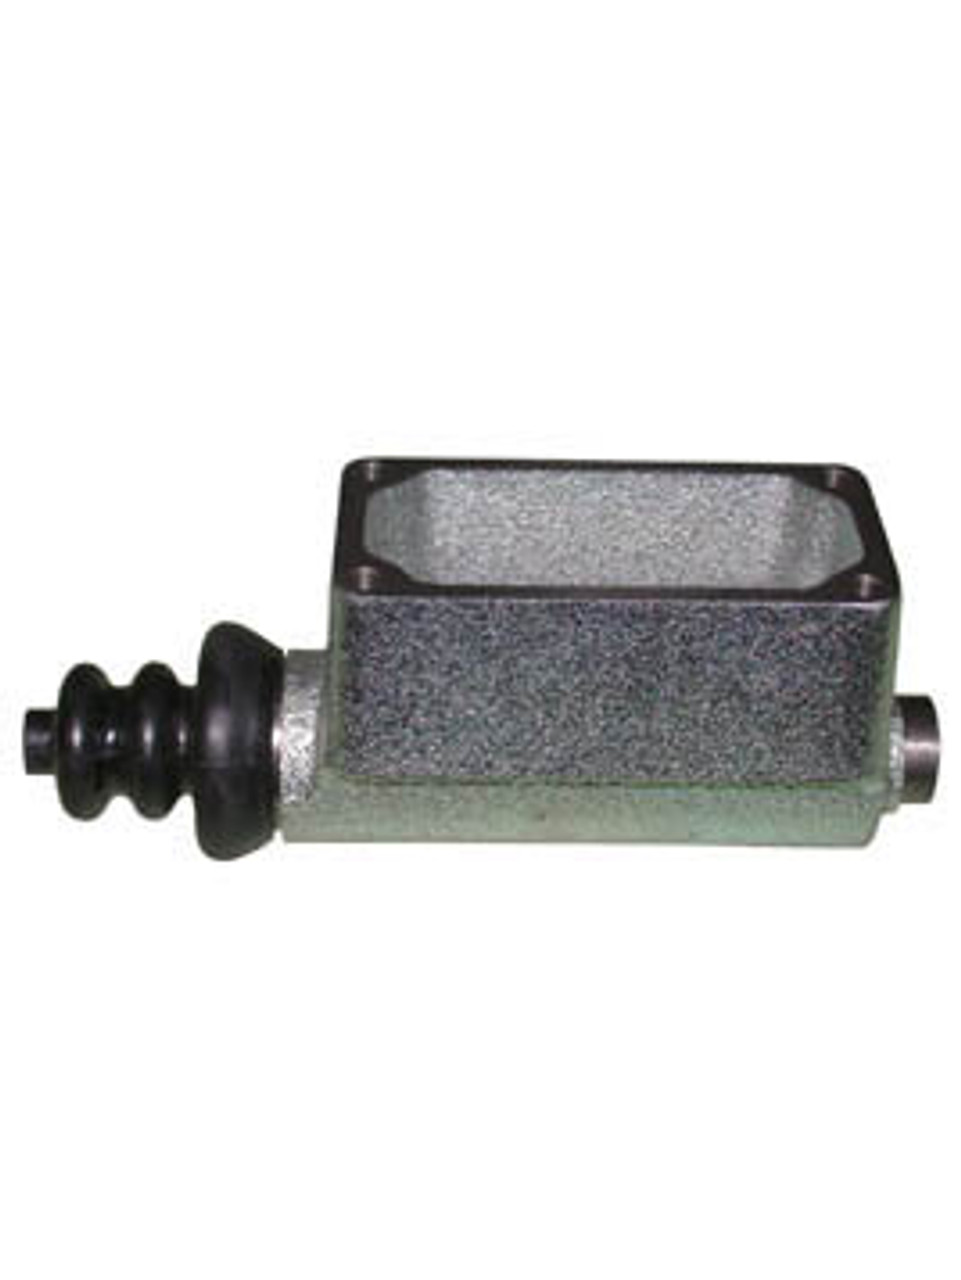 47142 --- Model 60 Actuator Master Cylinder for Disc Brakes